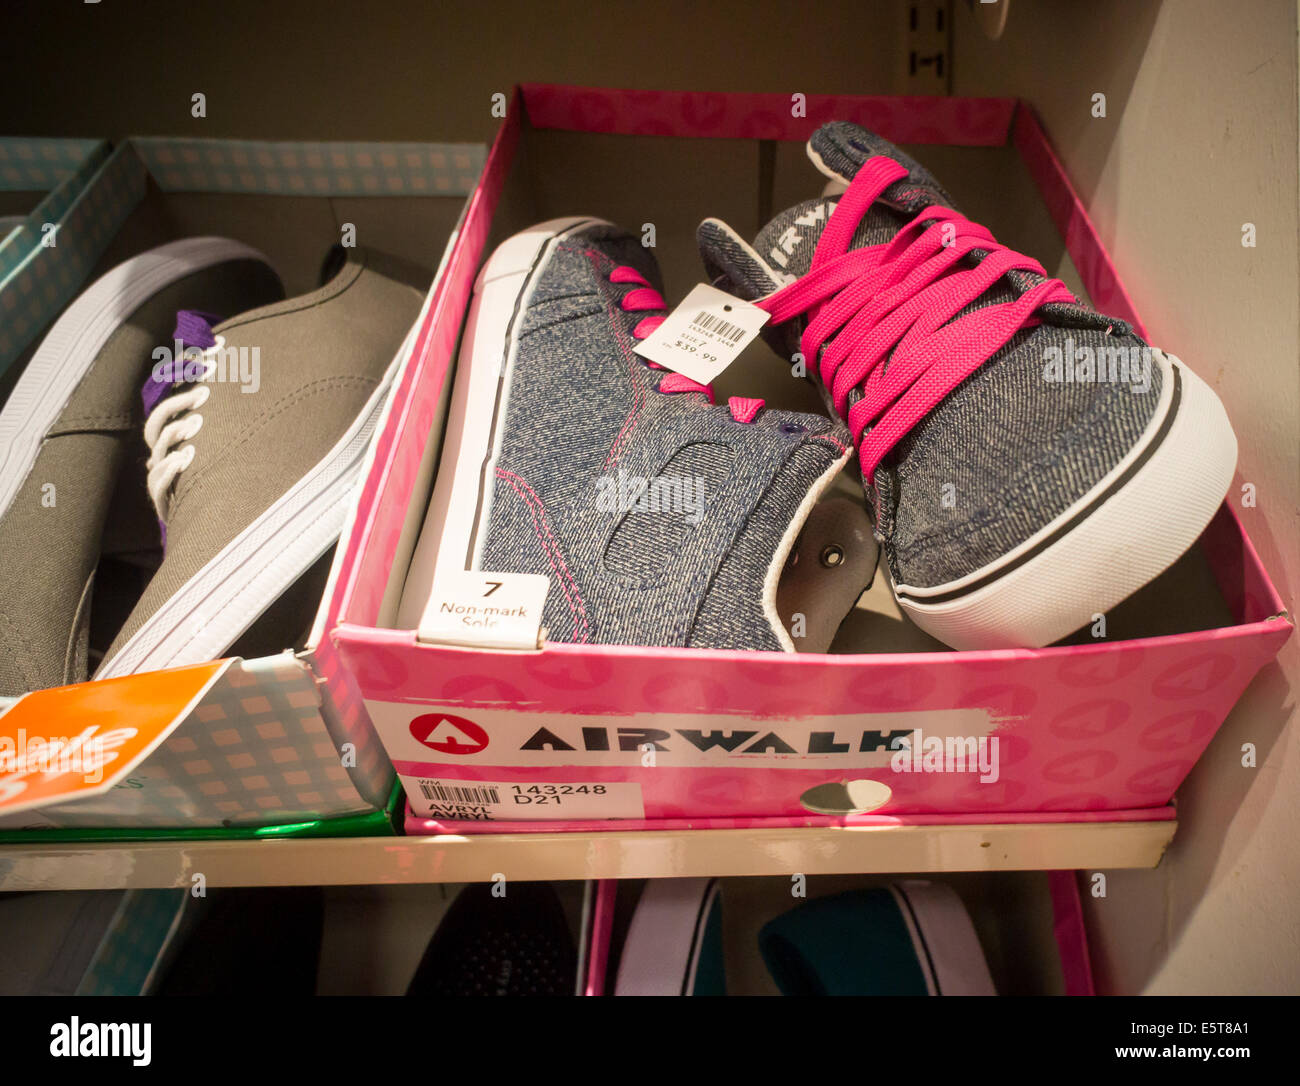 a8c42d069 Airwalk sneakers in a Payless ShoeSource store in New York Stock ...